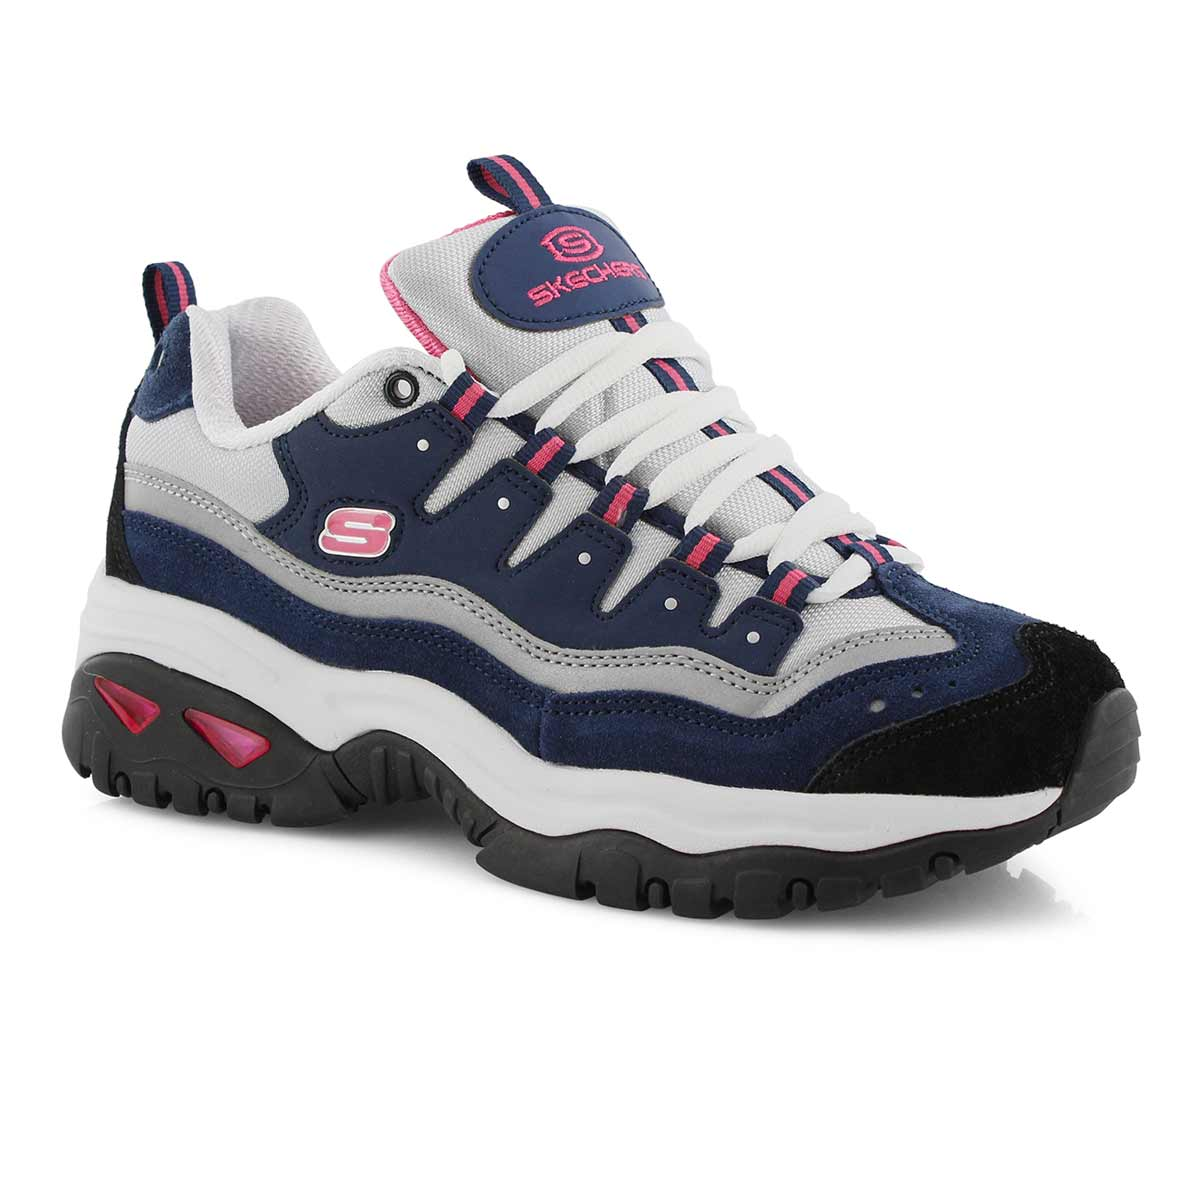 Lds Energy navy/hot pink sneaker